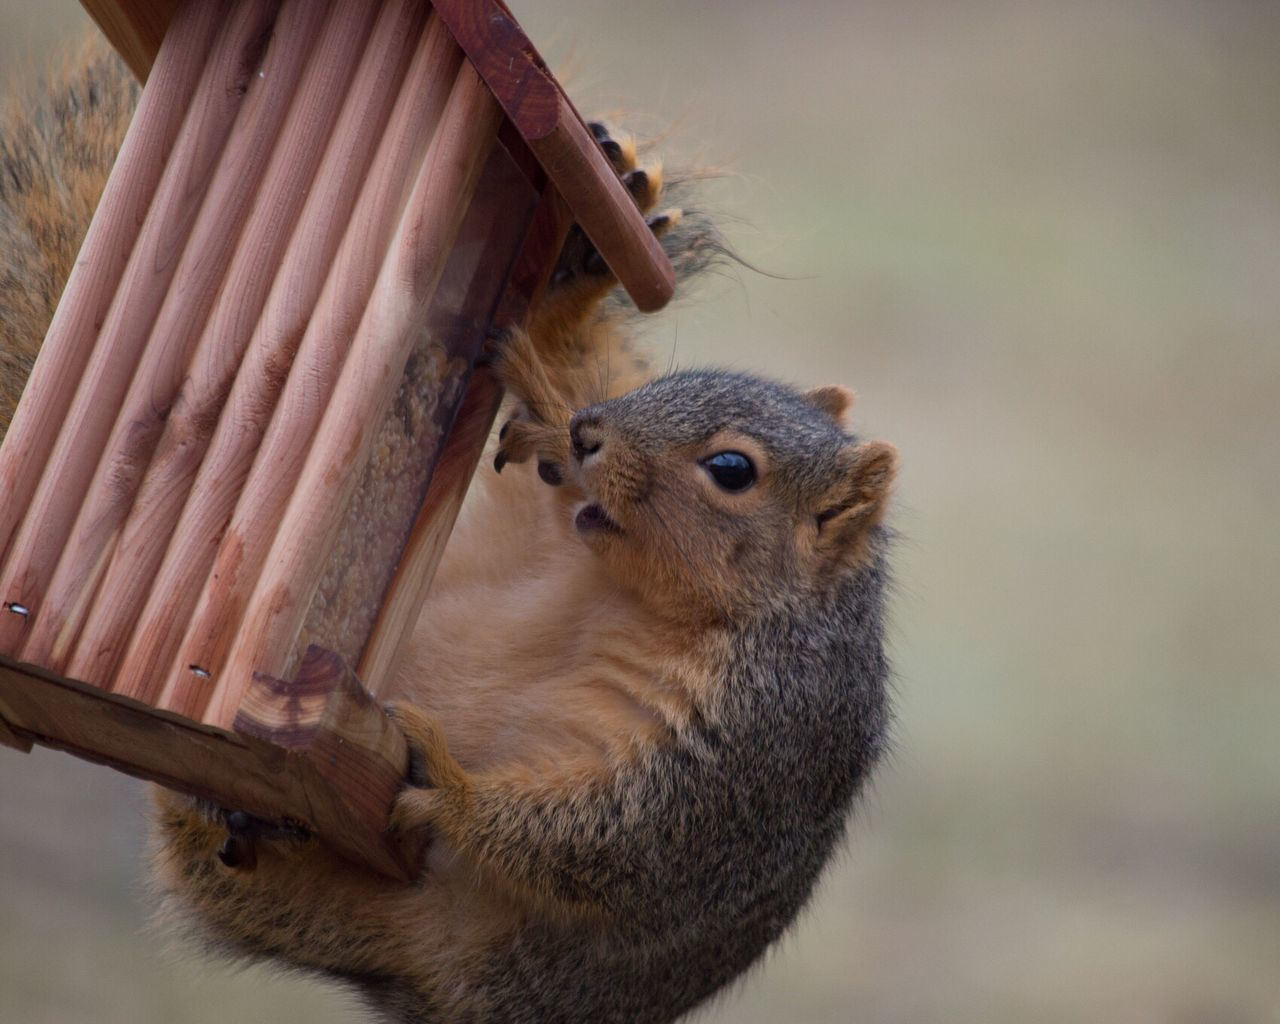 animal themes, animals in the wild, one animal, animal wildlife, no people, focus on foreground, mammal, day, close-up, squirrel, outdoors, eating, nature, bird